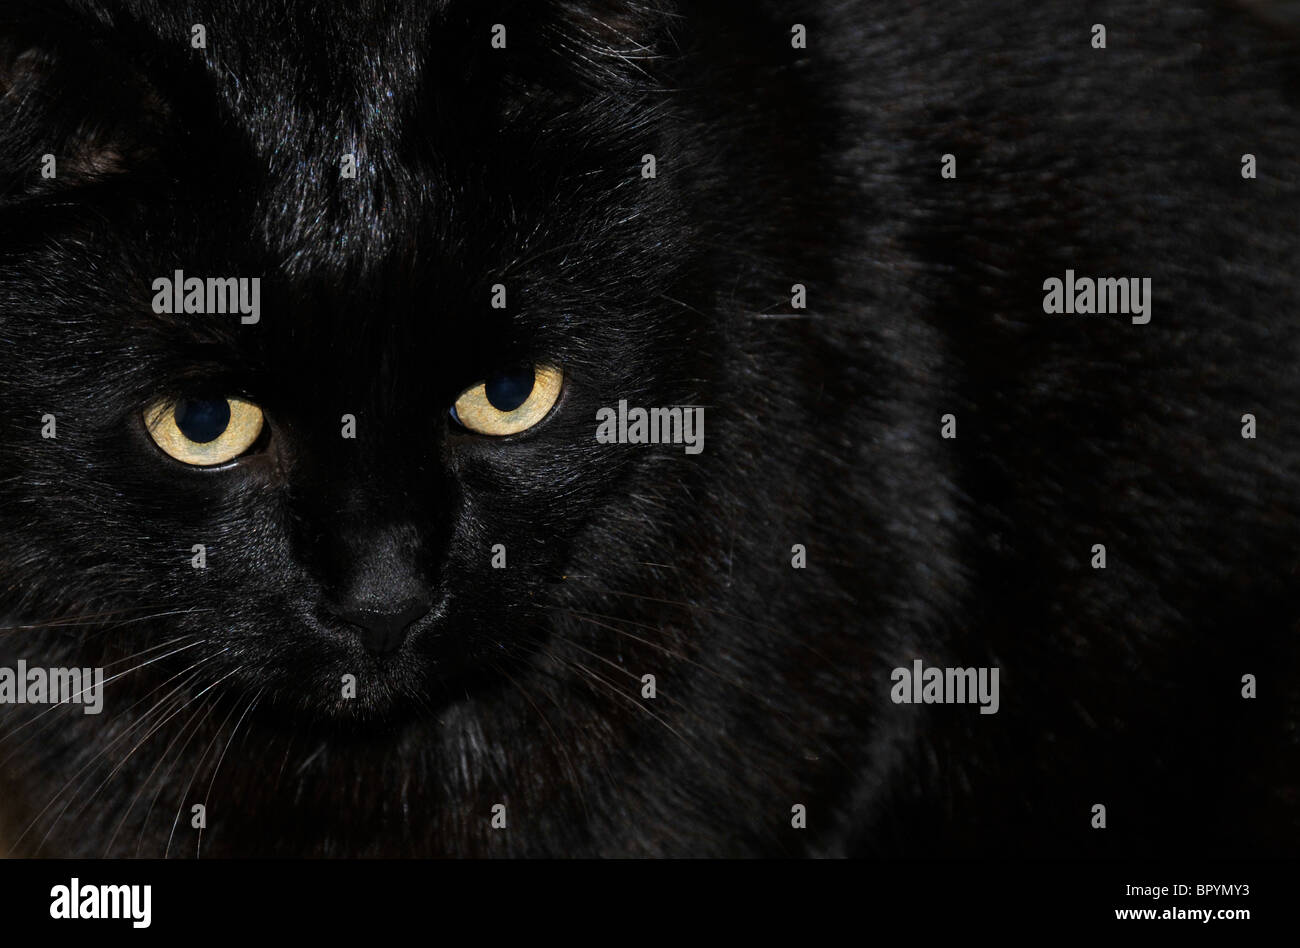 black cat with yellow eyes - Stock Image